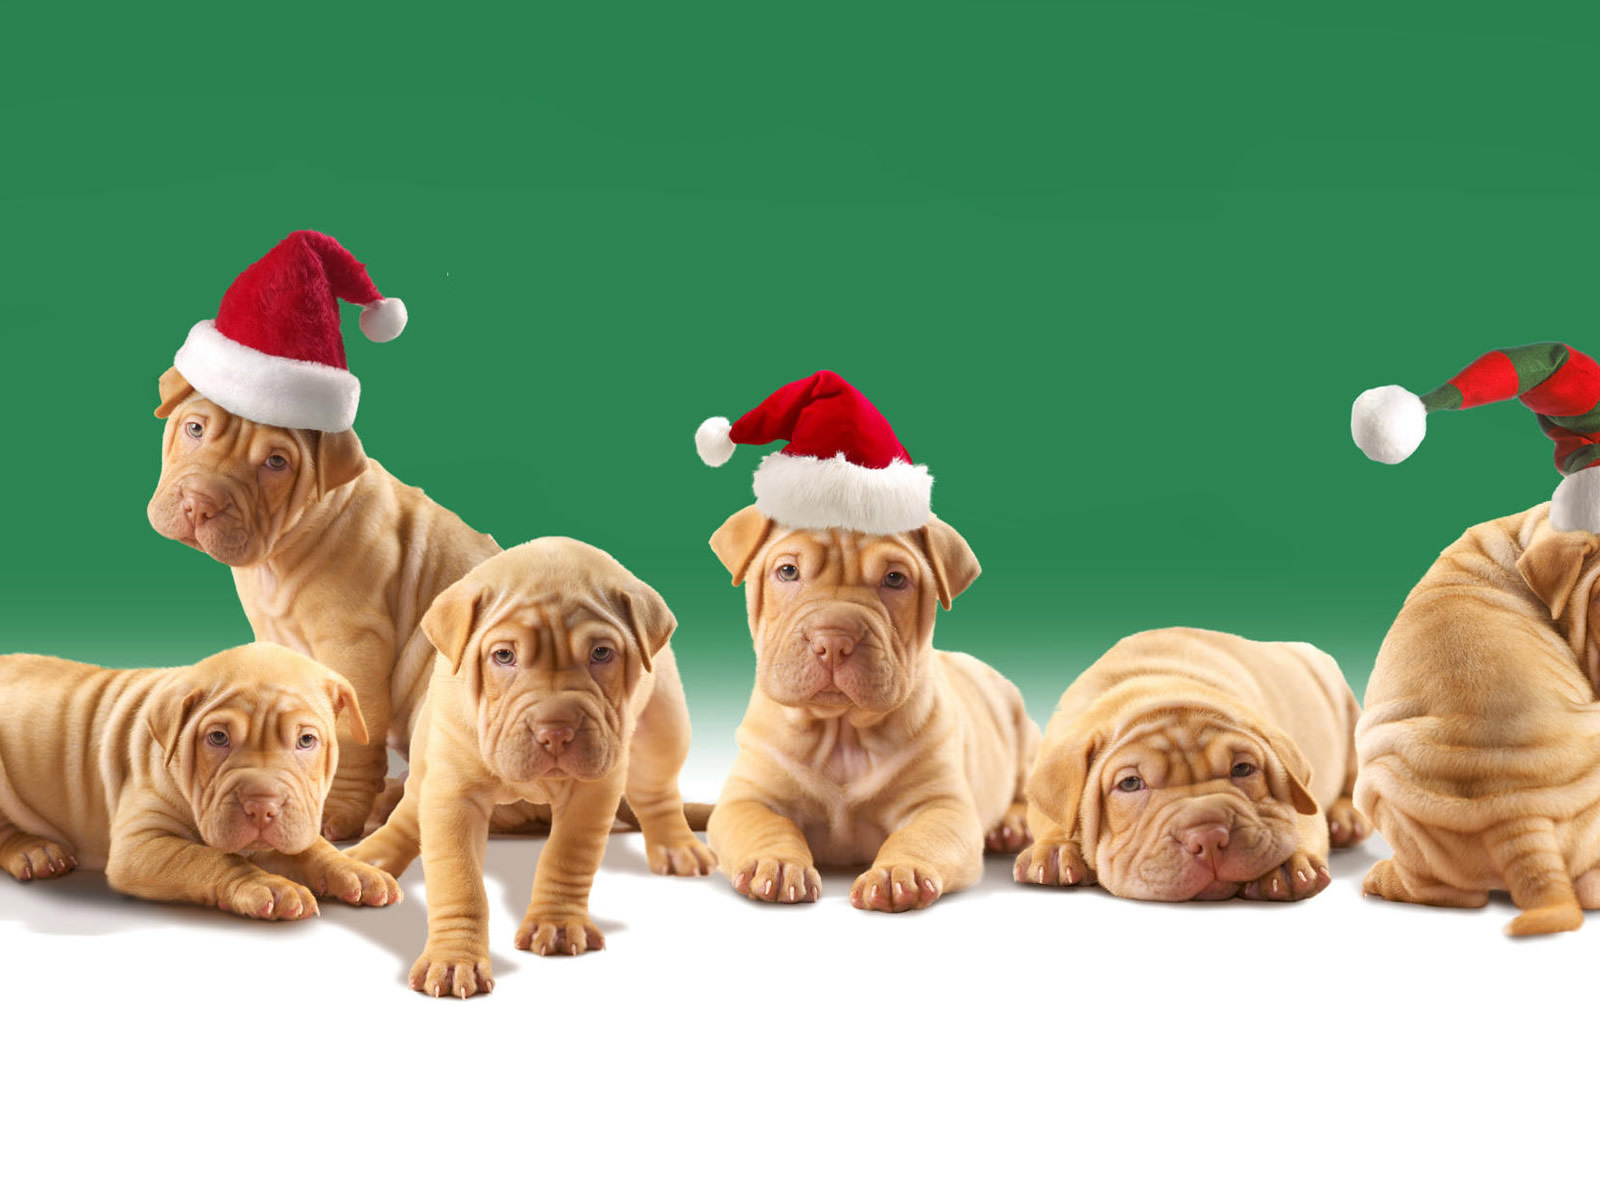 Animals Zoo Park Cute Dogs Wallpapers For Desktop Cute: Animals Zoo Park: 5 Christmas Puppies Wallpapers